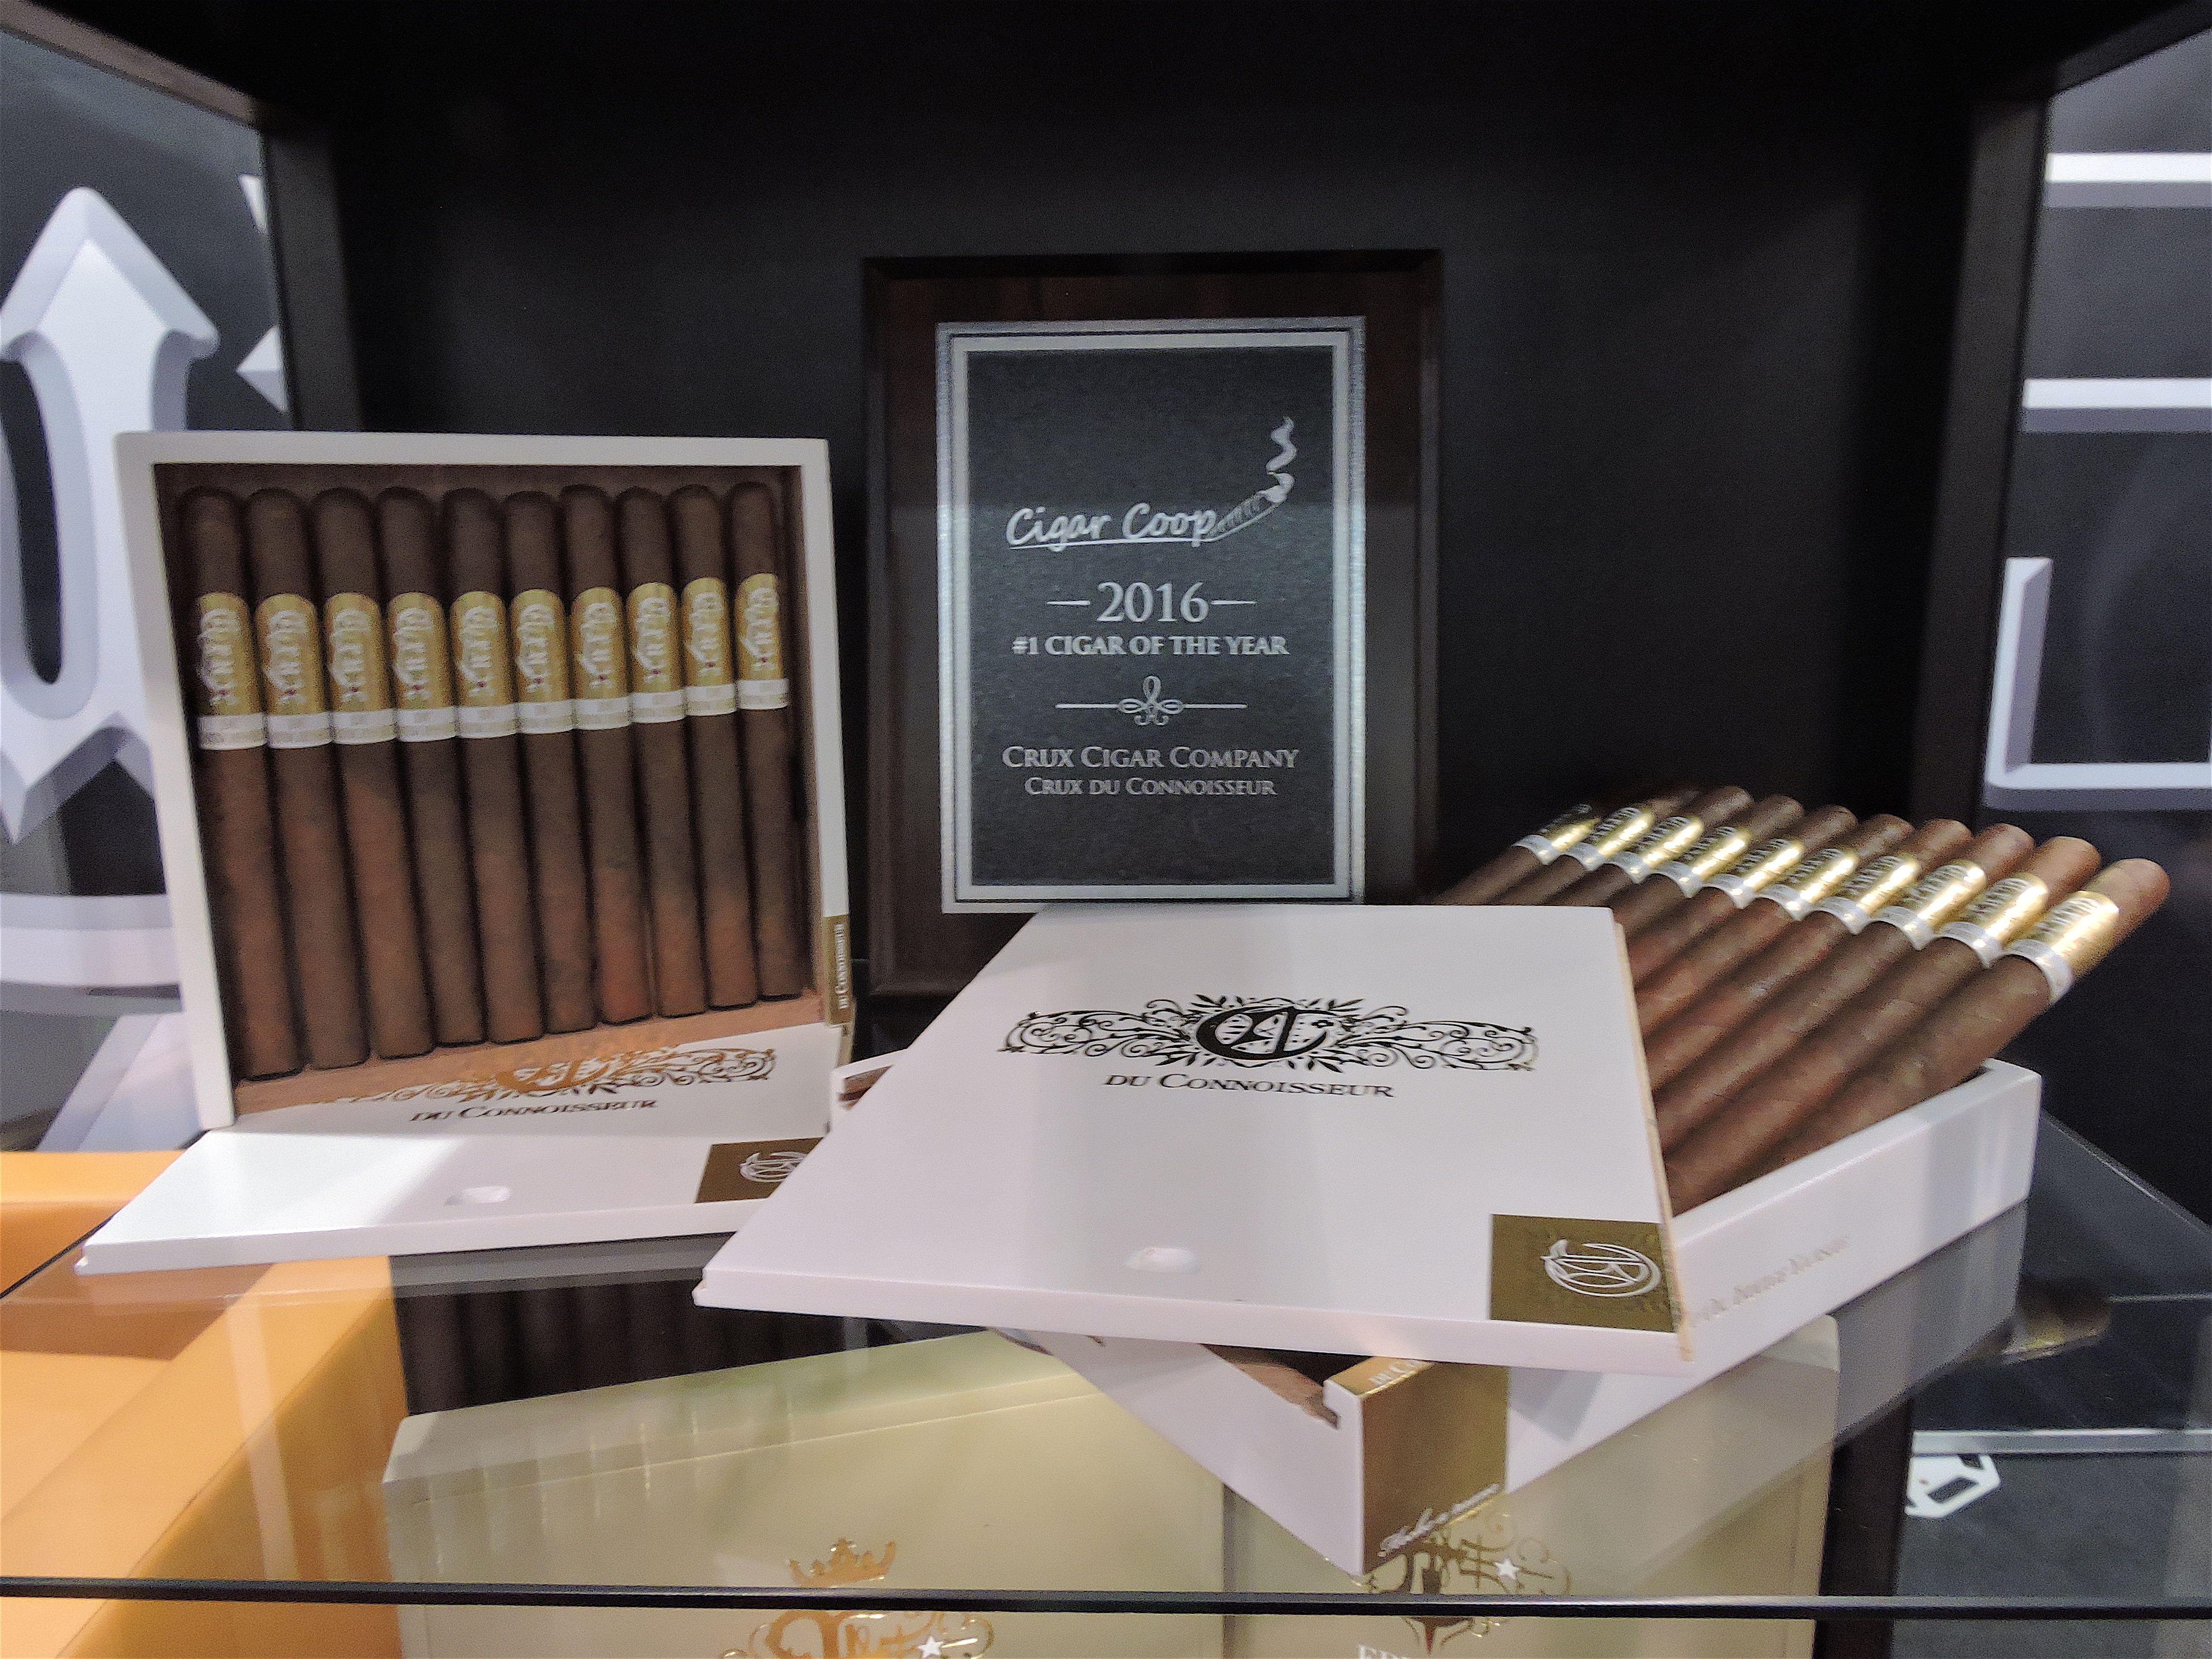 Crux du Connoisseur Cigar of the Year 2016